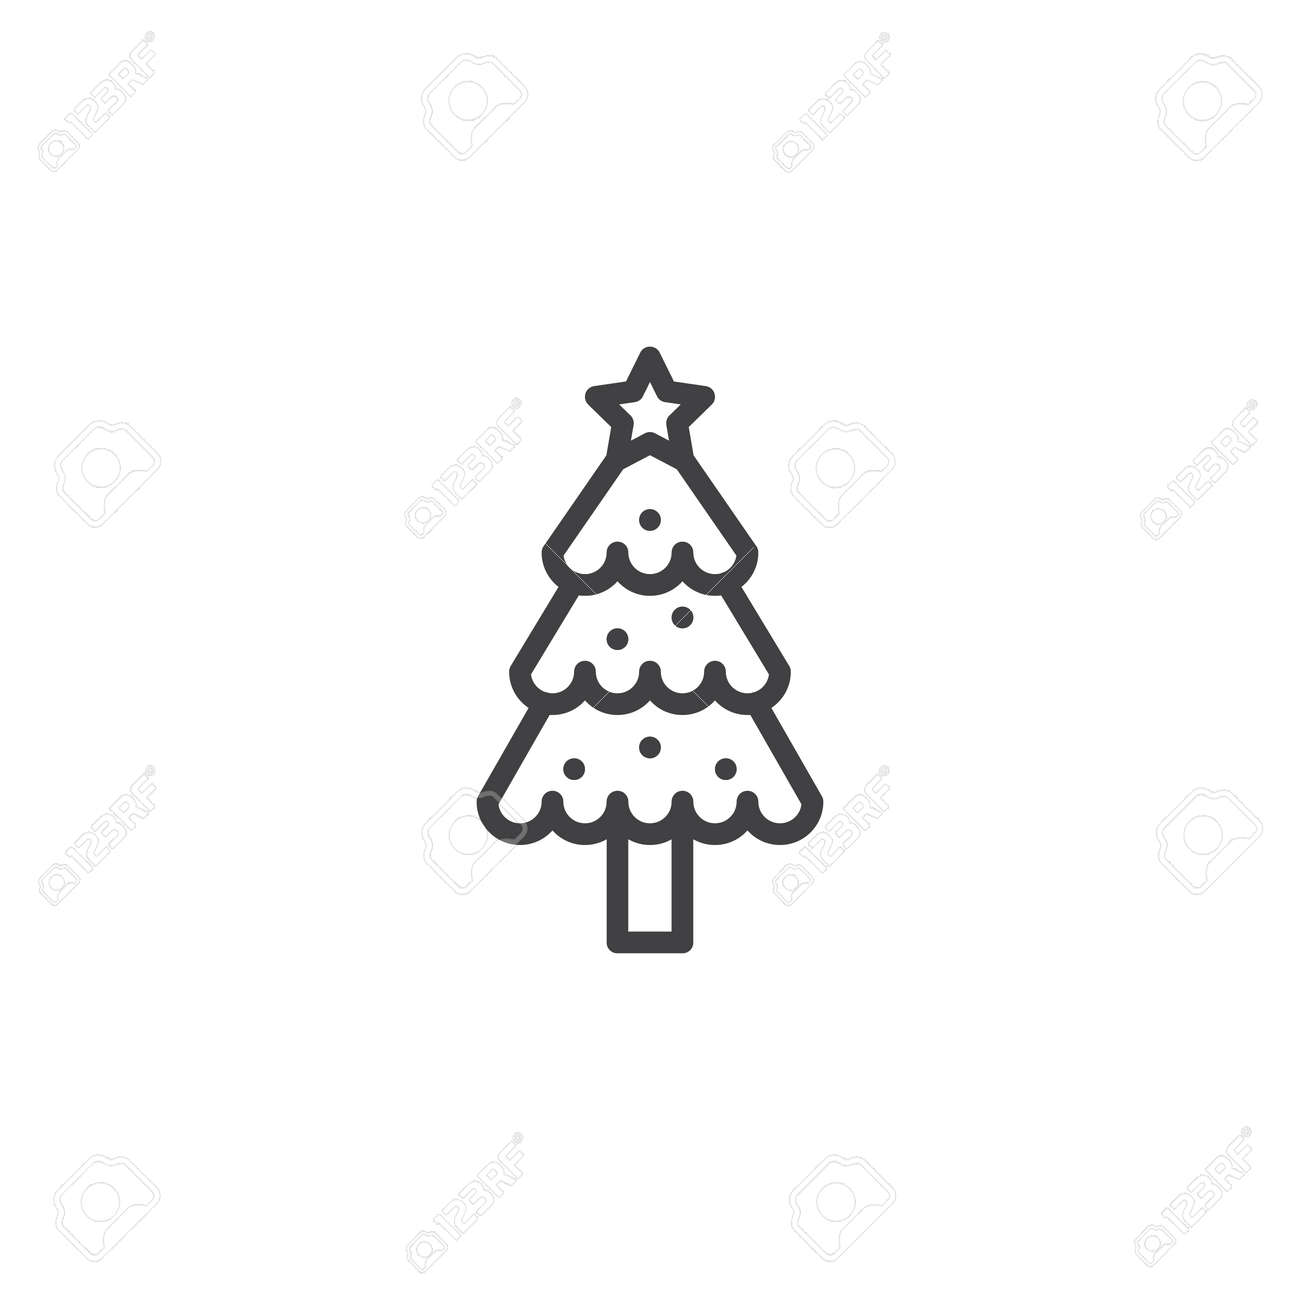 Decorated Christmas Tree Outline Icon Linear Style Sign For